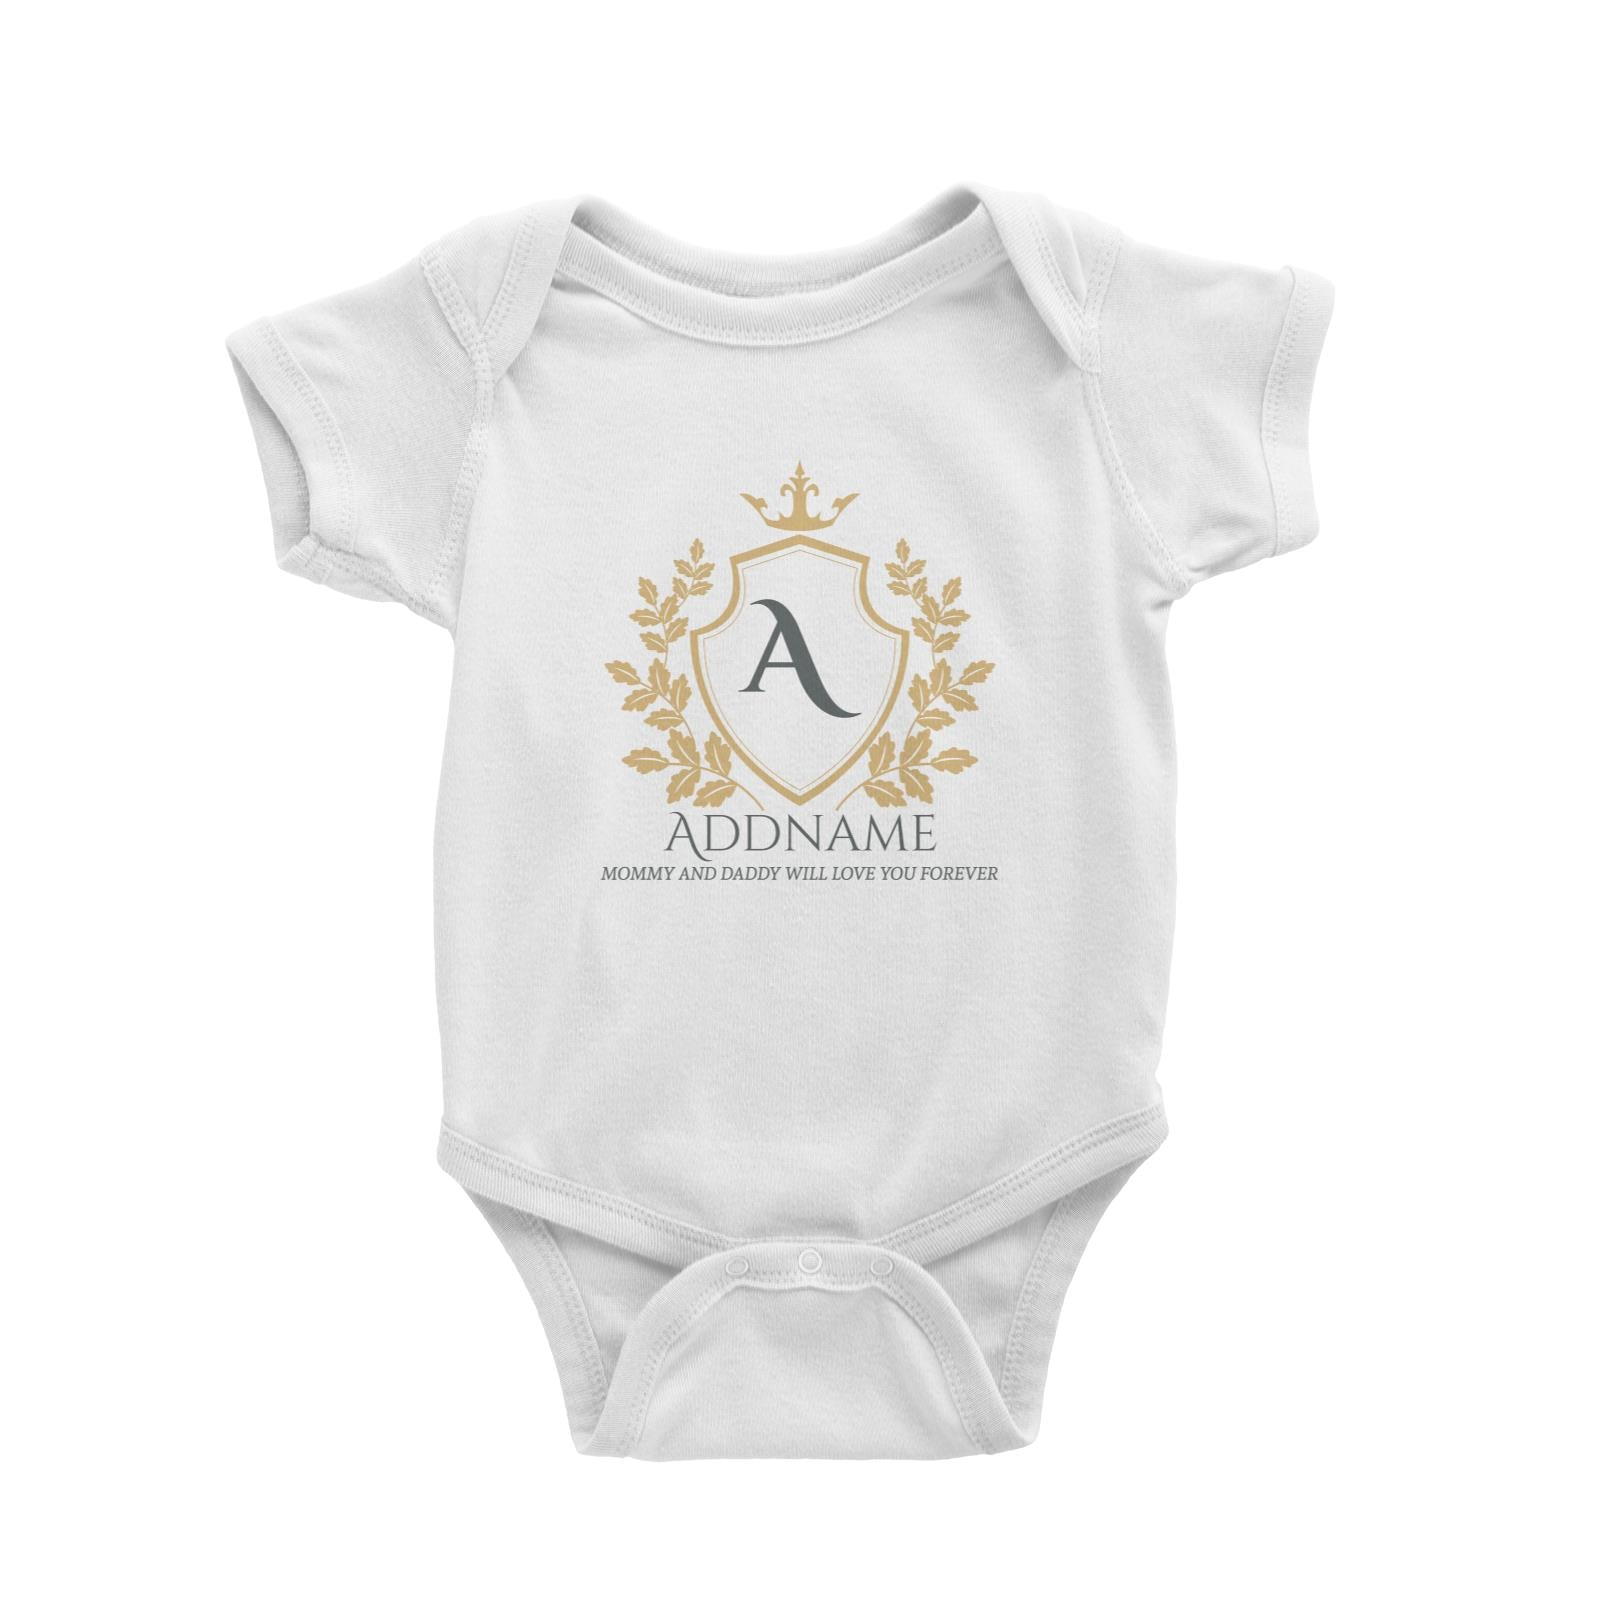 Royal Emblem Logo with Crown 2 Personalizable with Initial Name and Text Baby Romper